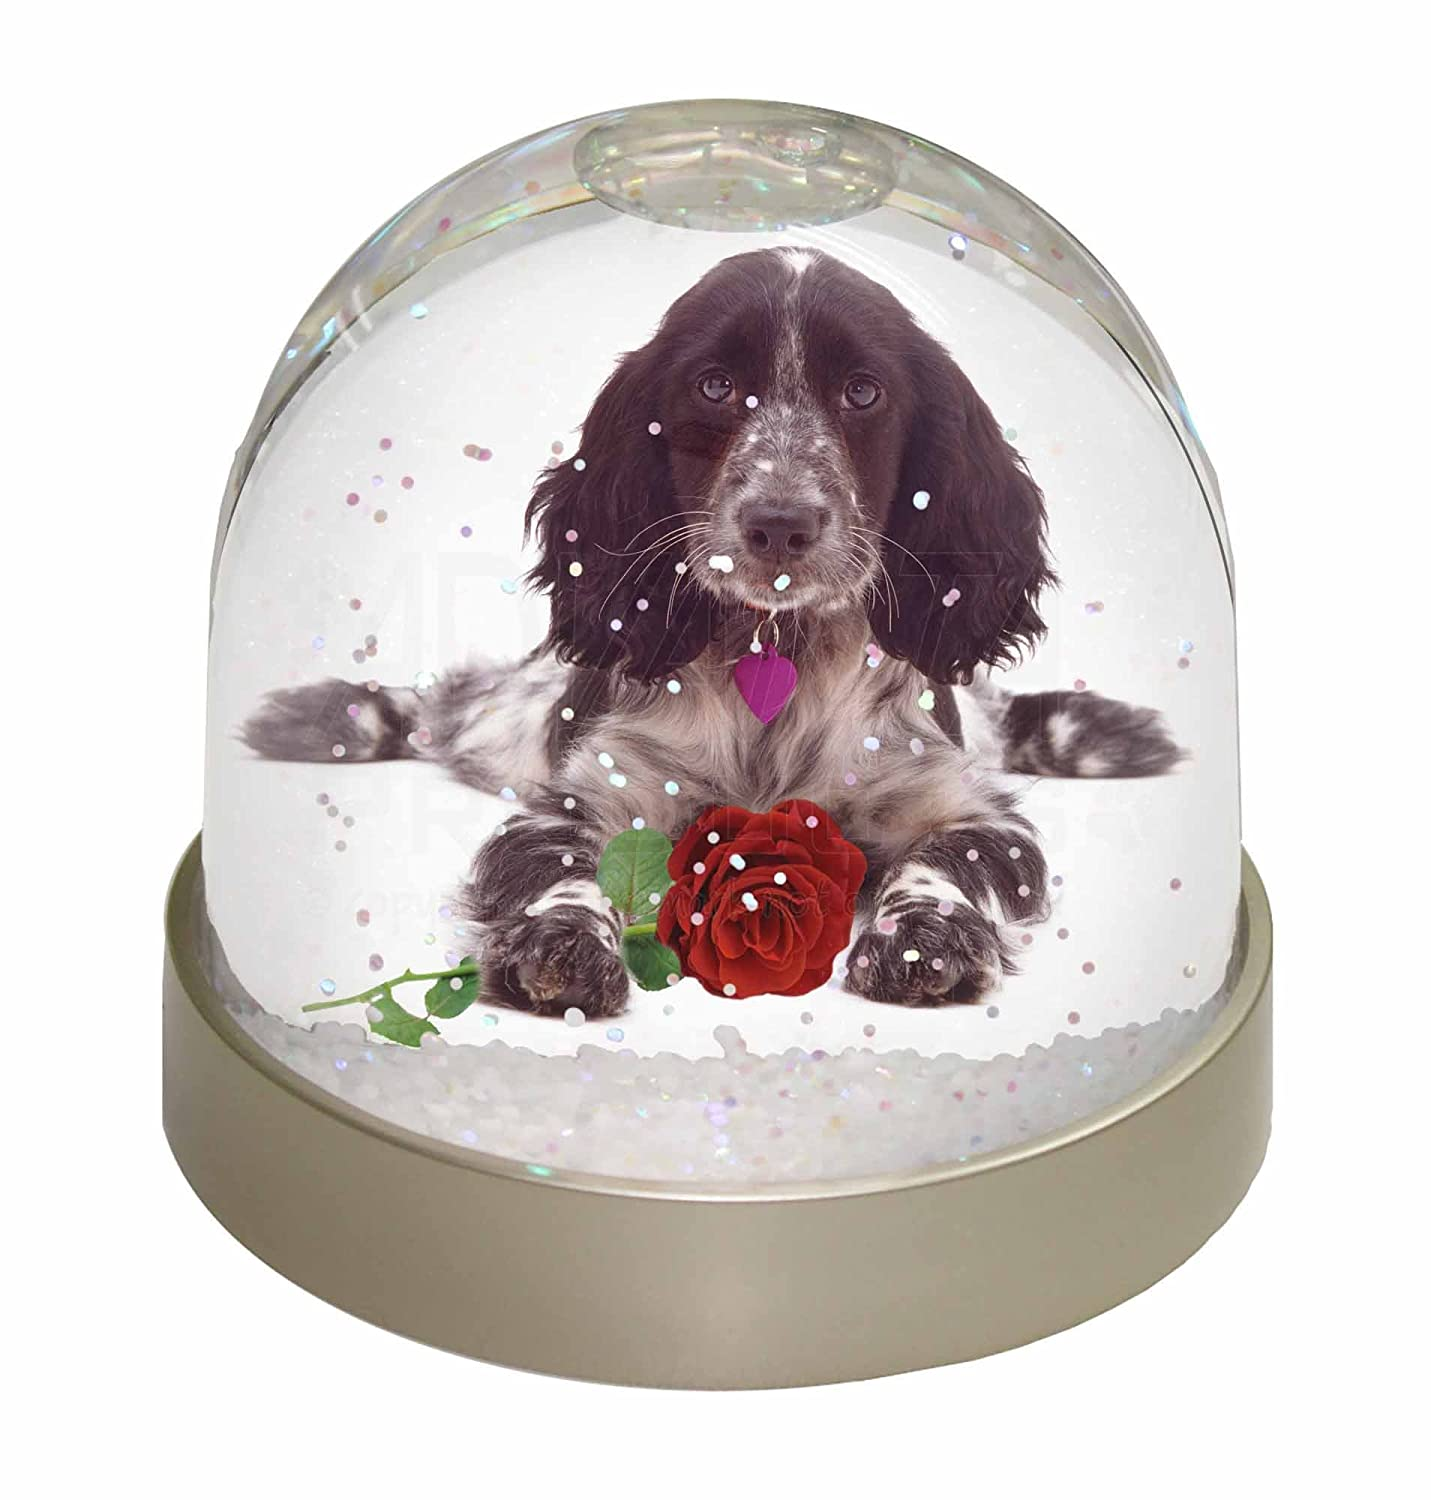 Advanta Blue Roan Cocker Spaniel with Rose Photo Snow Globe Waterball Stocking Filler Gift, Multi-Colour, 9.2 x 9.2 x 8 cm Advanta Products AD-SC13RGL